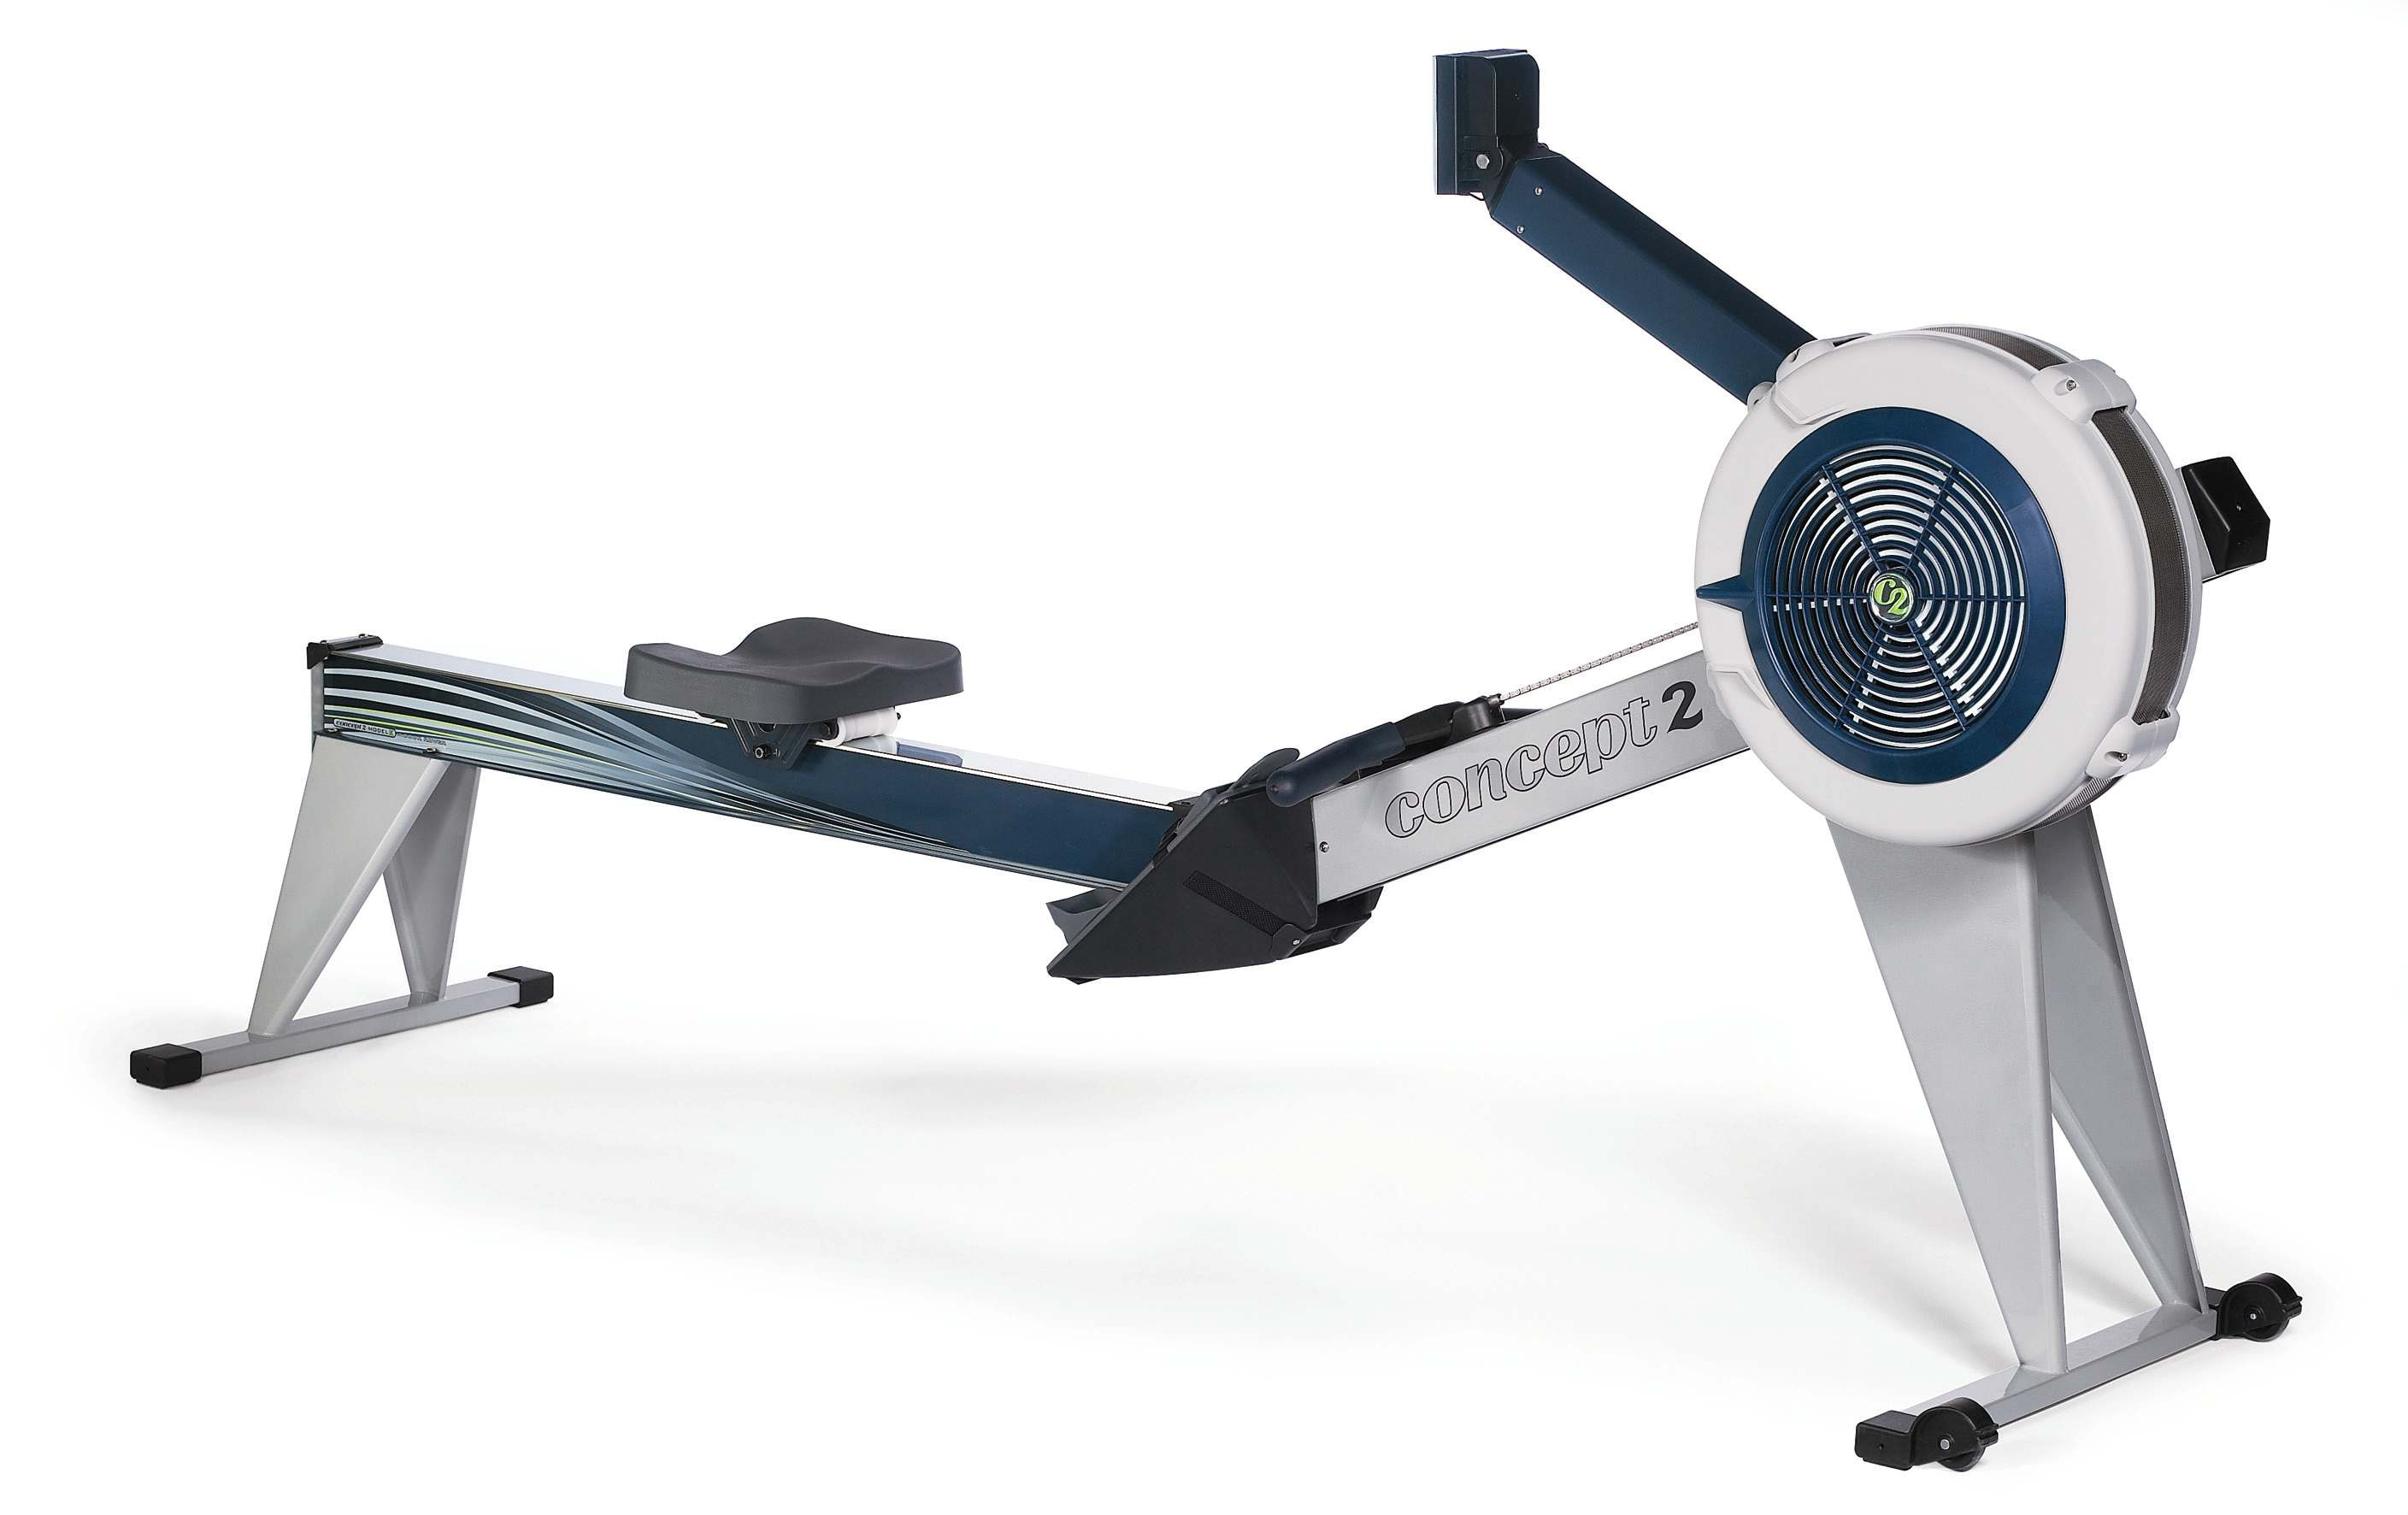 concept 2 indoor rower concept 2 model e indoor rower images femalecelebrity 286